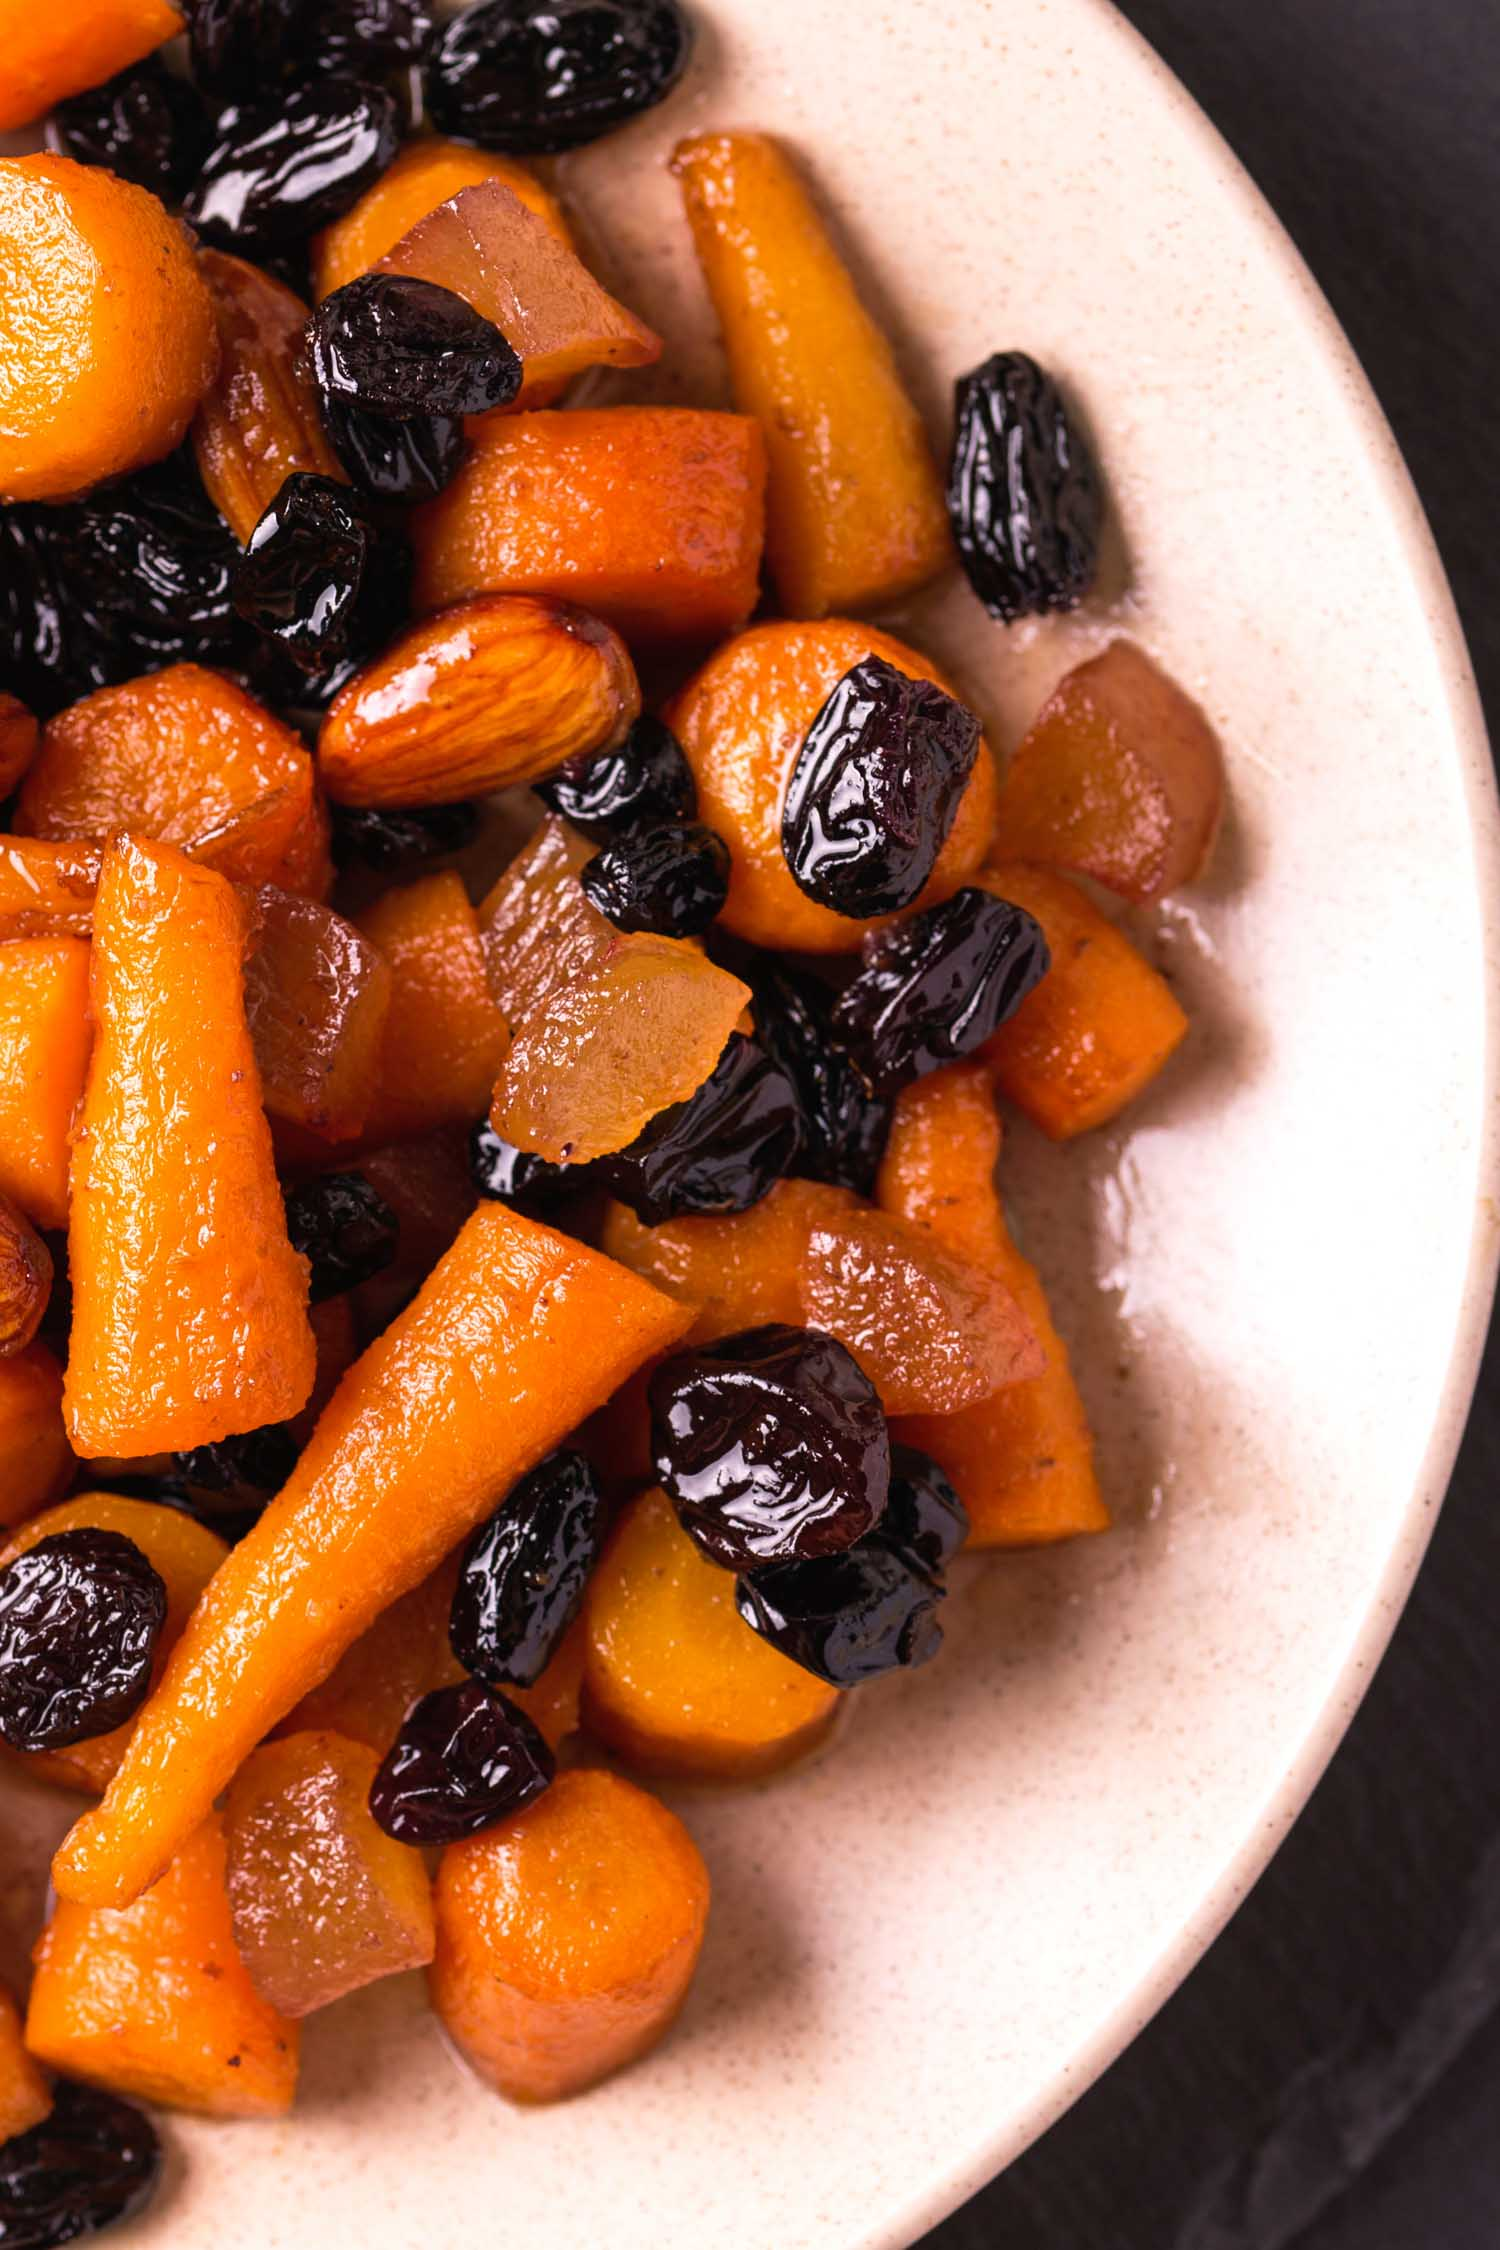 Tzimmes or carrots and dried fruits on a white plate